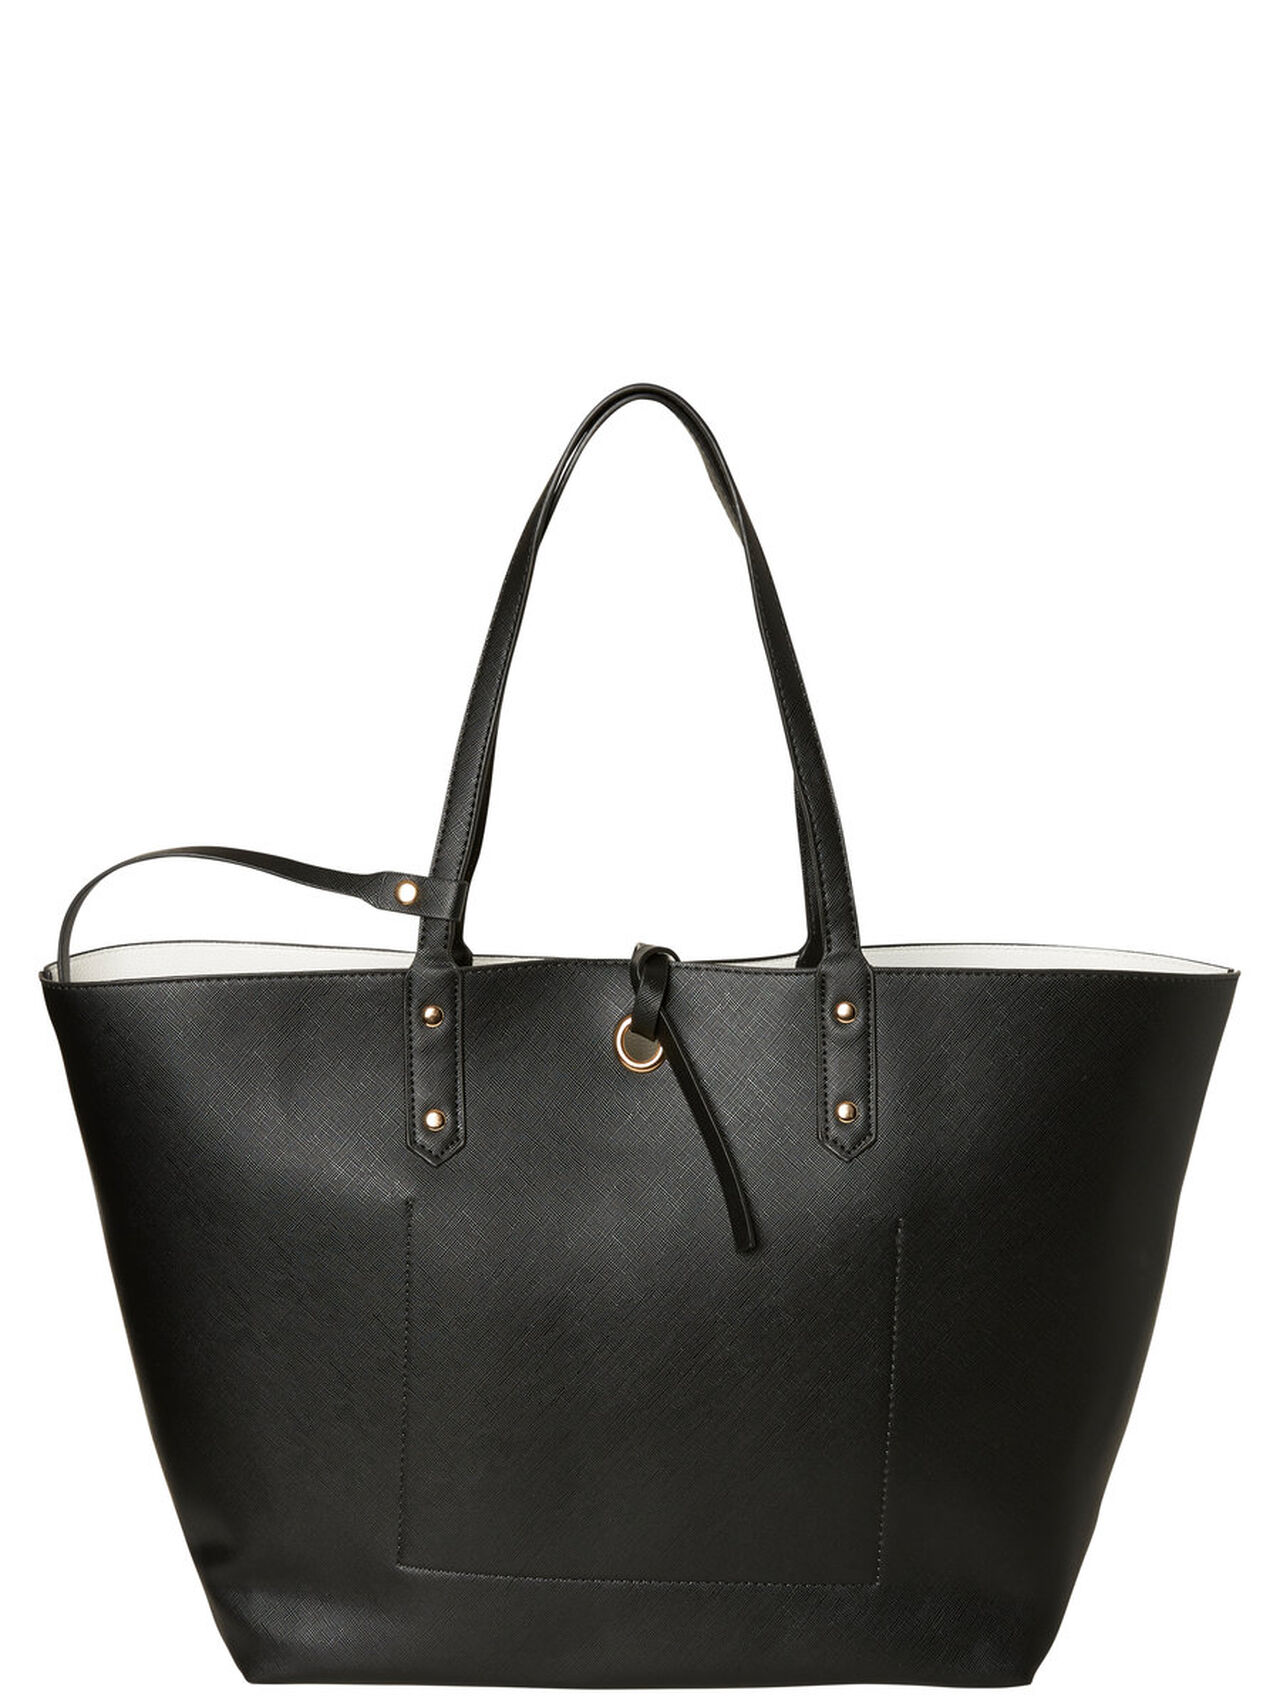 VERO MODA Shopper Bag Women Black